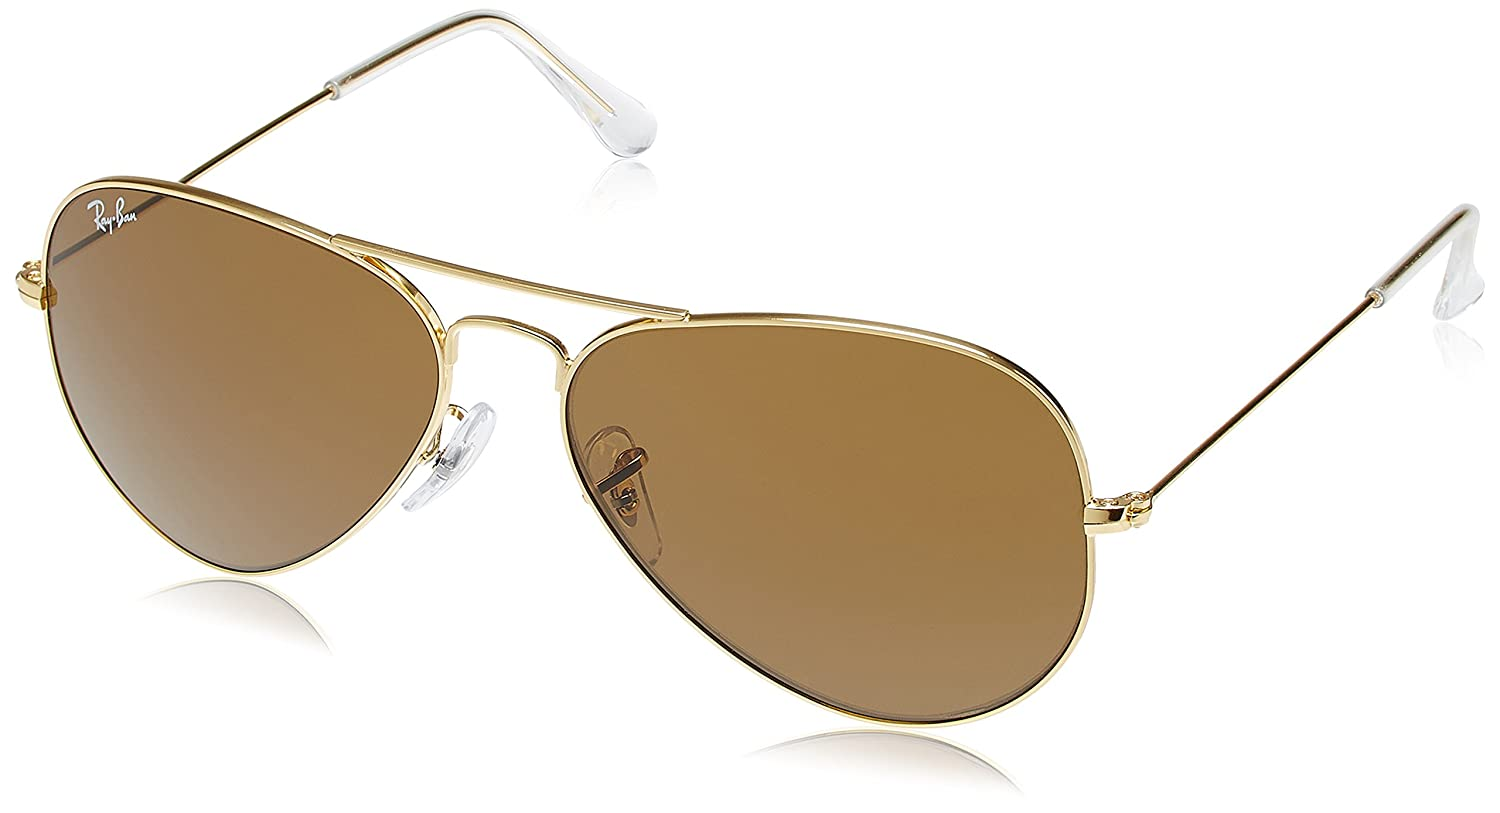 Ray-Ban Aviator Unisex Sunglasses (RB3025 58 Brown color)  Amazon.in   Clothing   Accessories 440bab7b13